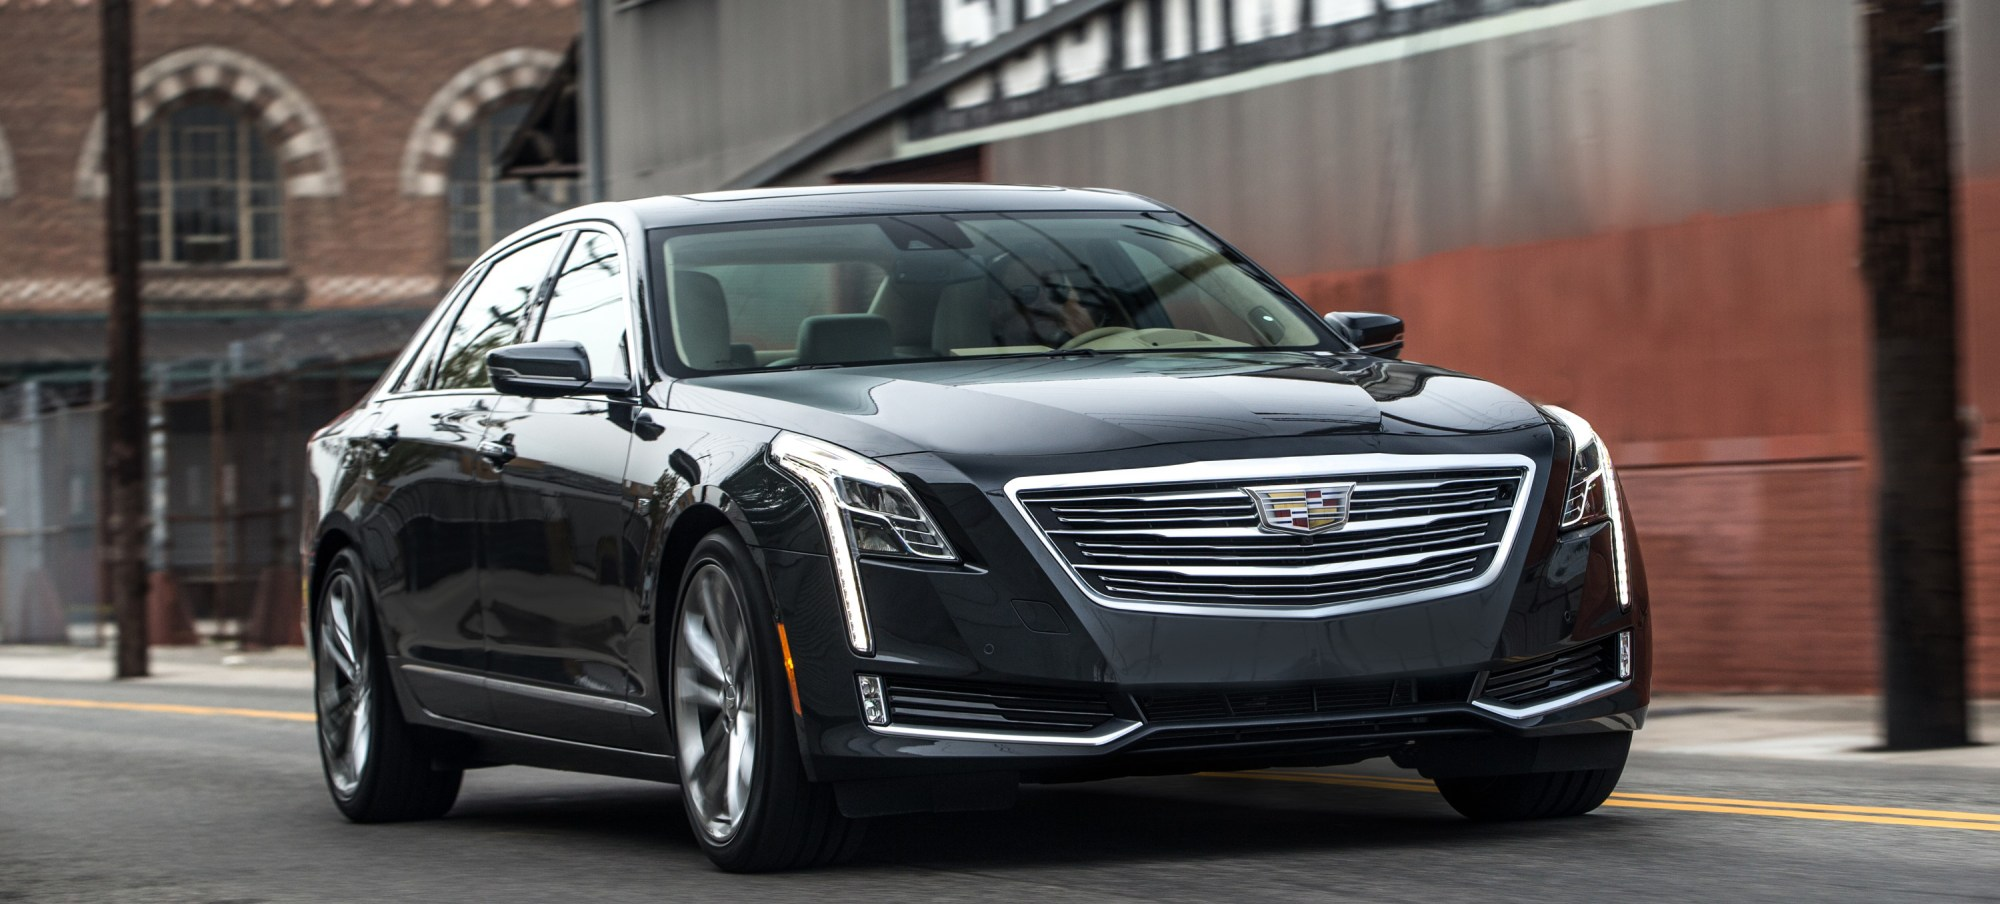 hight resolution of cadillac ct6 to be launched